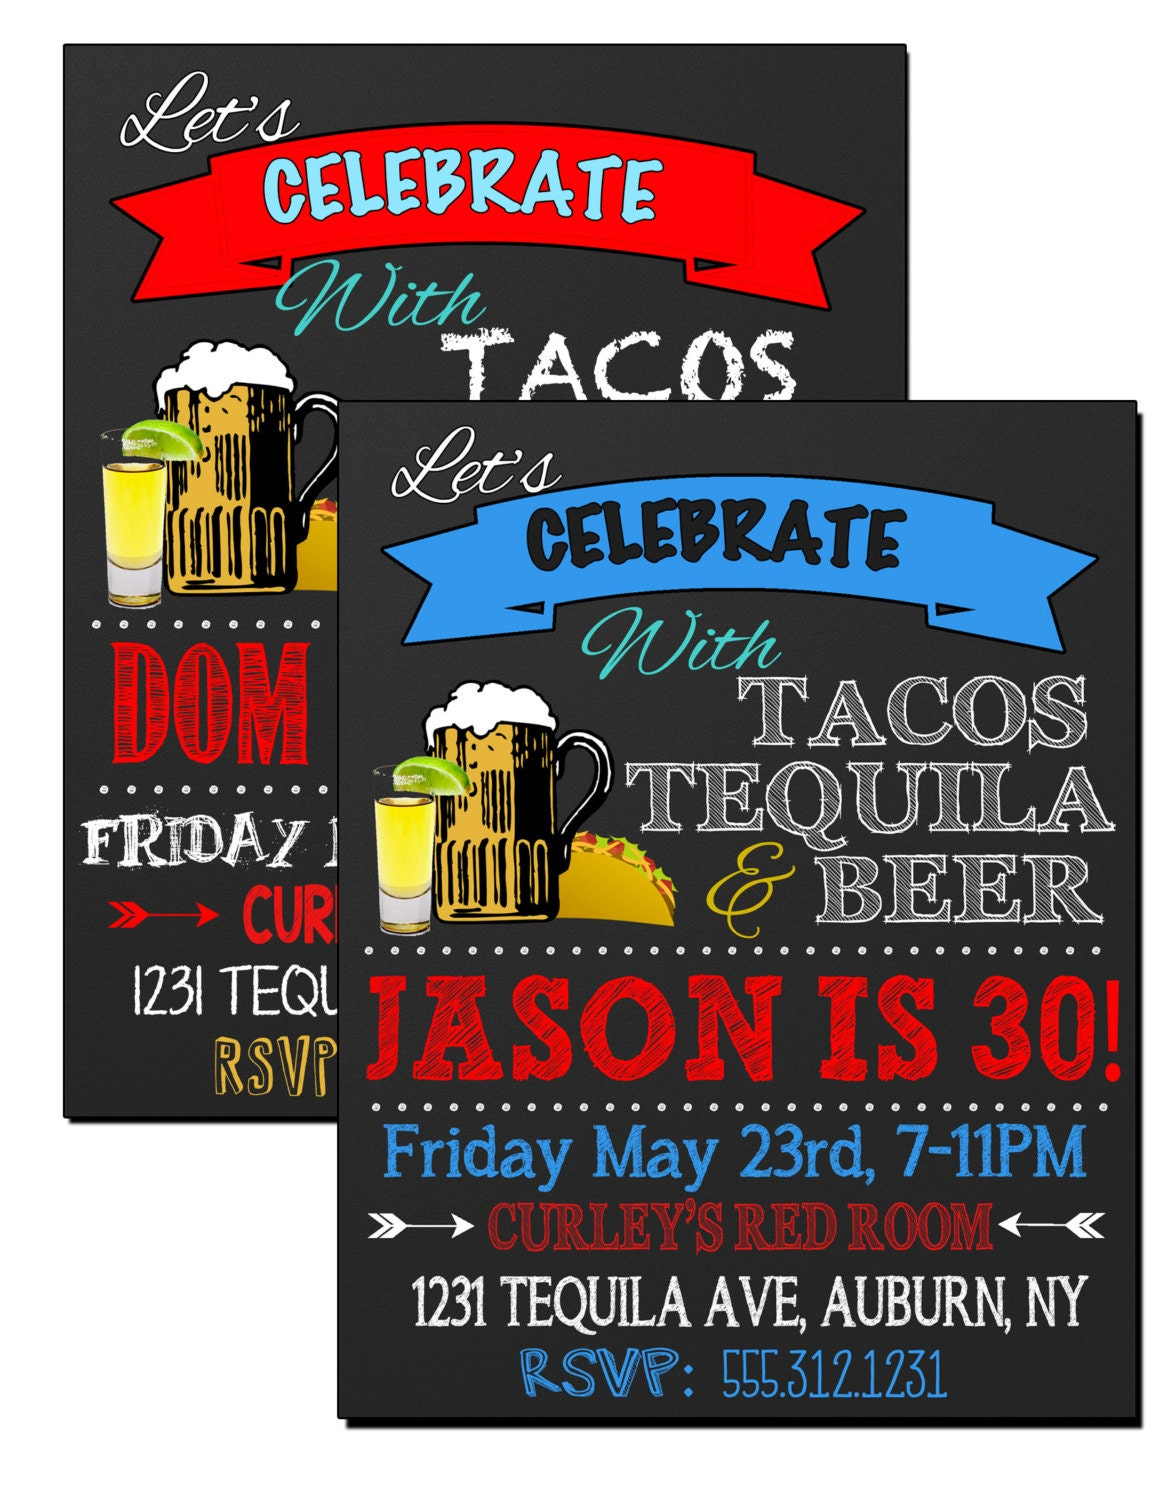 Tacos tequila beer birthday party invite tequila party